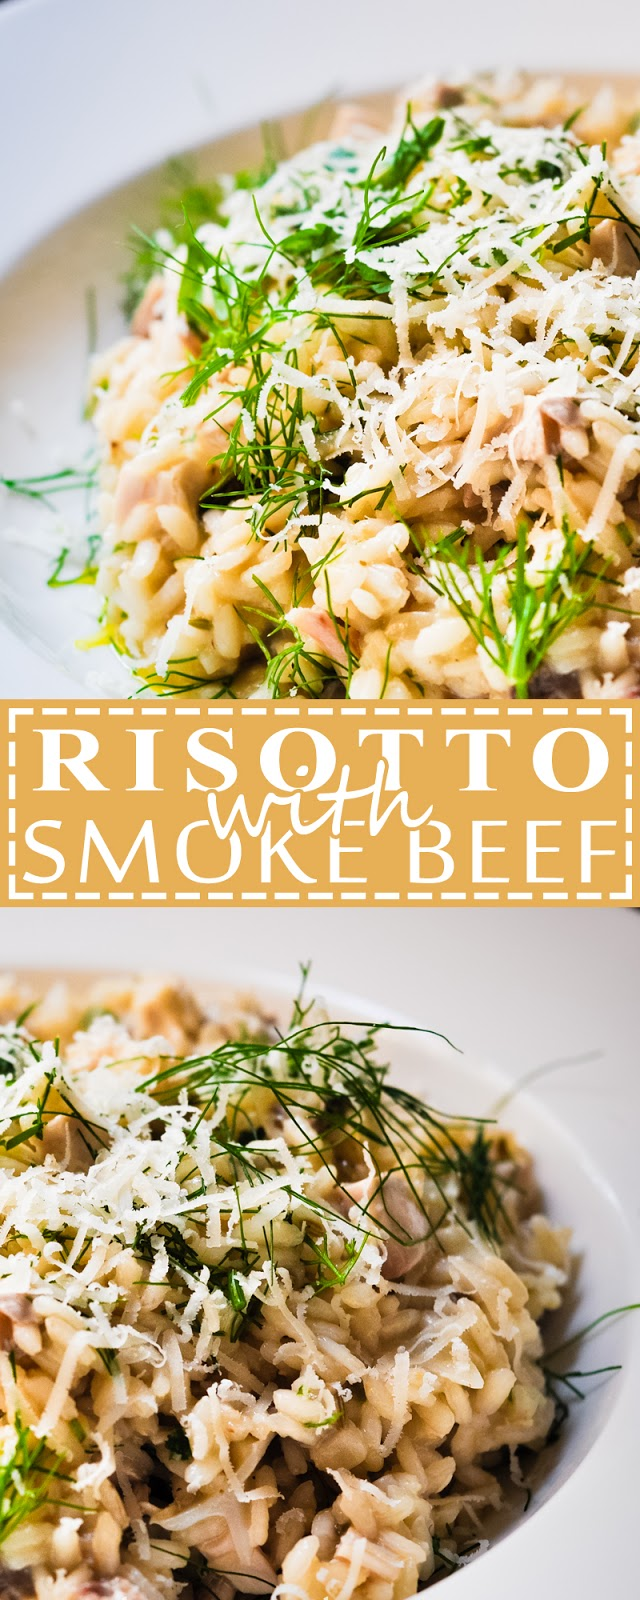 RISOTTO WITH SMOKE BEEF